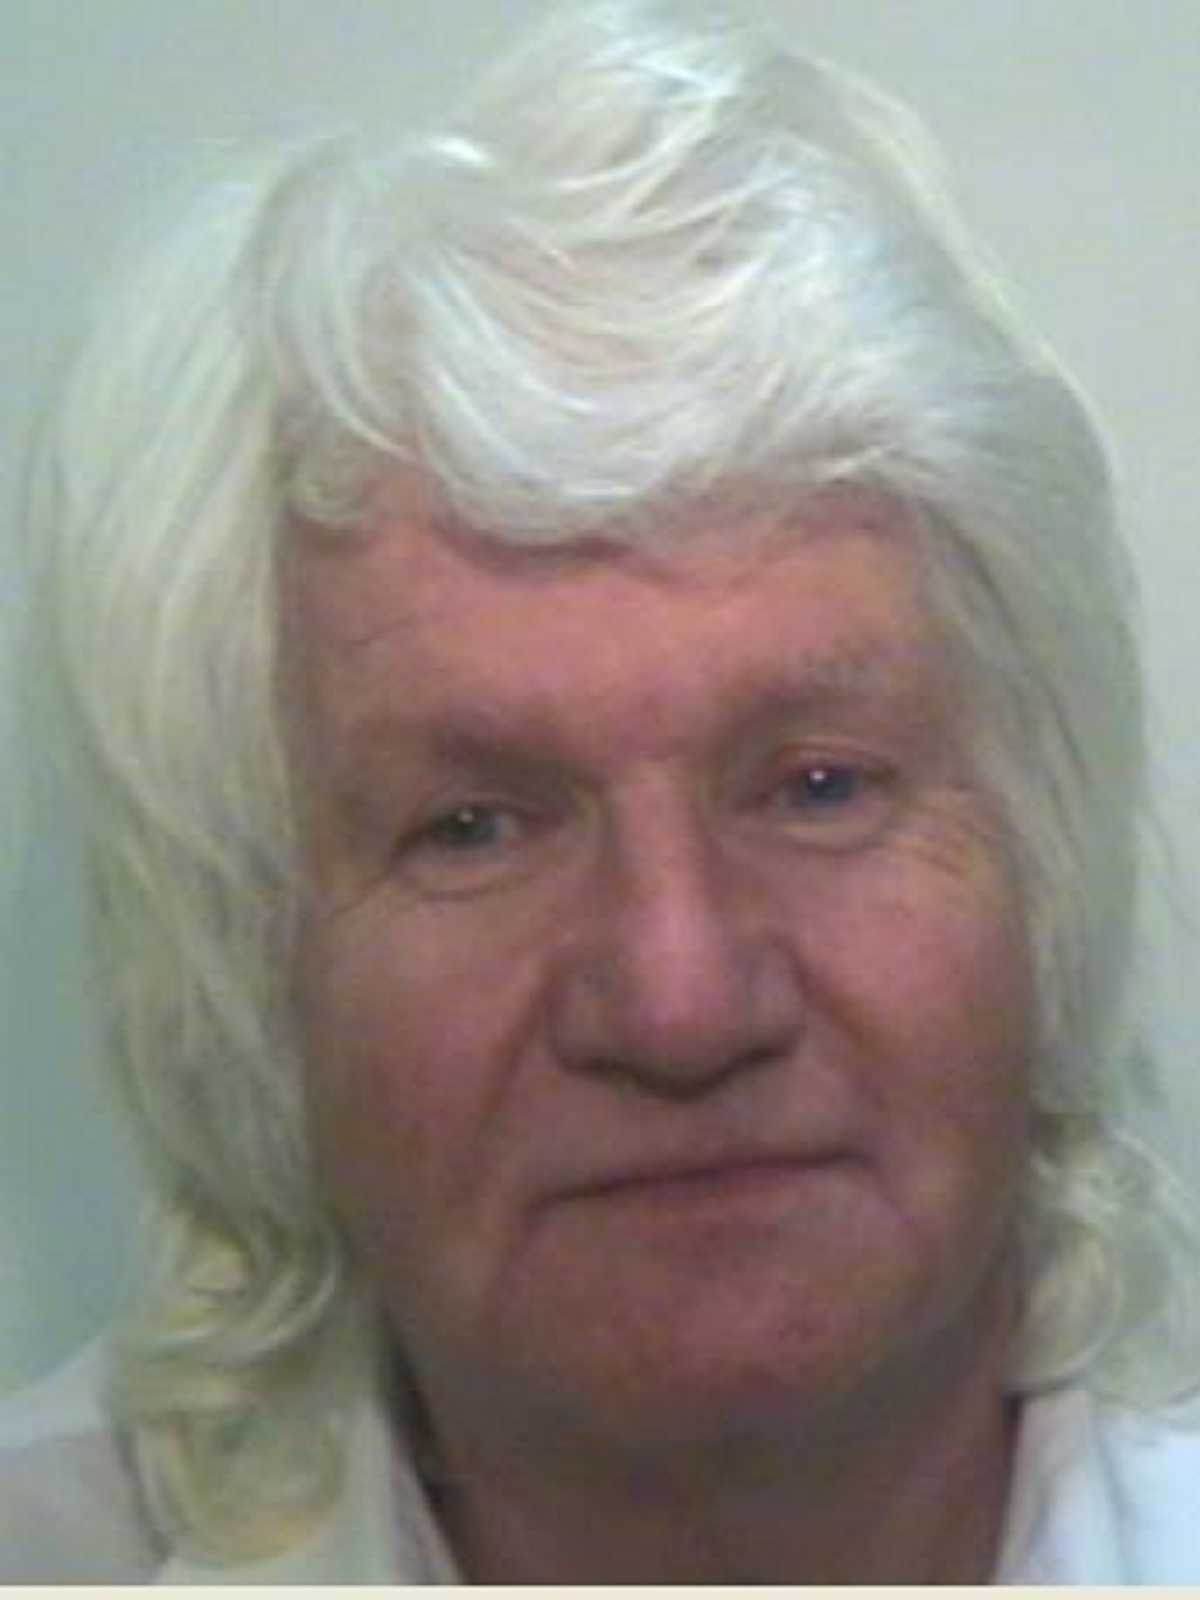 Dennis Whitfield, aged 66, of Horbury Drive, Bury, pleaded guilty to eight counts of fraud by false representation